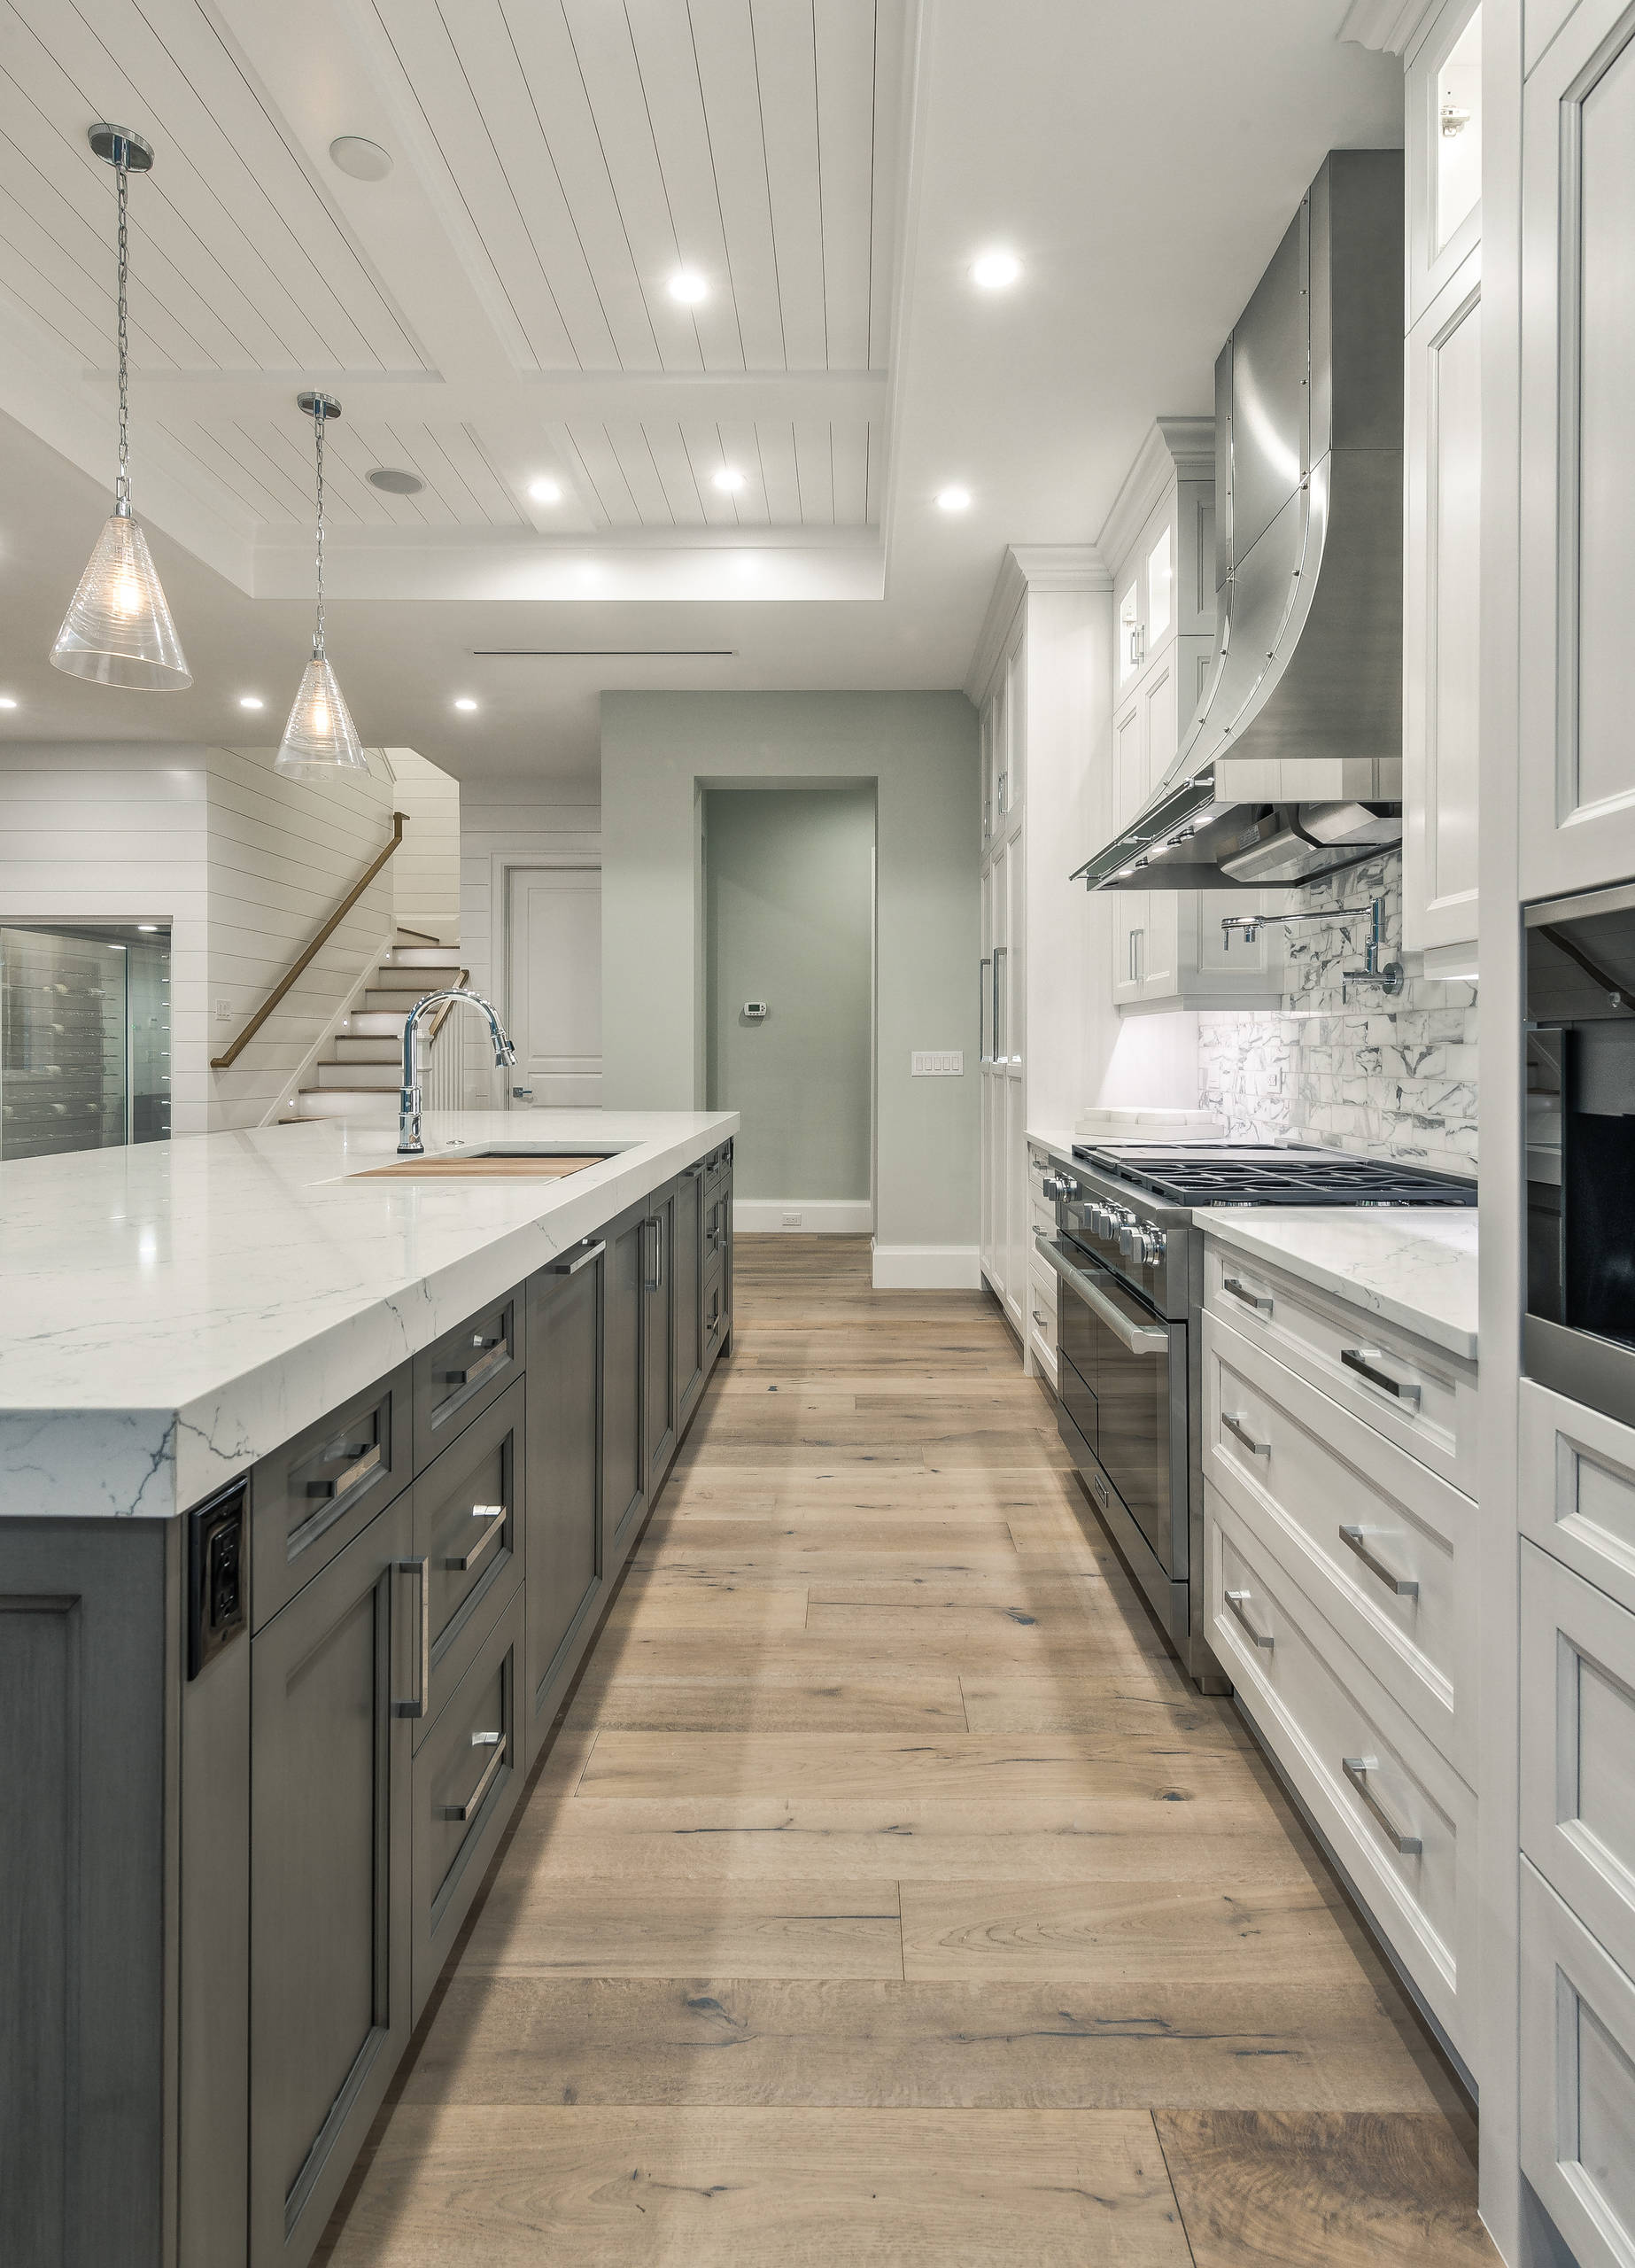 Custom Kitchen Cabinet Designs You Need To Consider When You Re Renovating Your Kitchen My Decorative